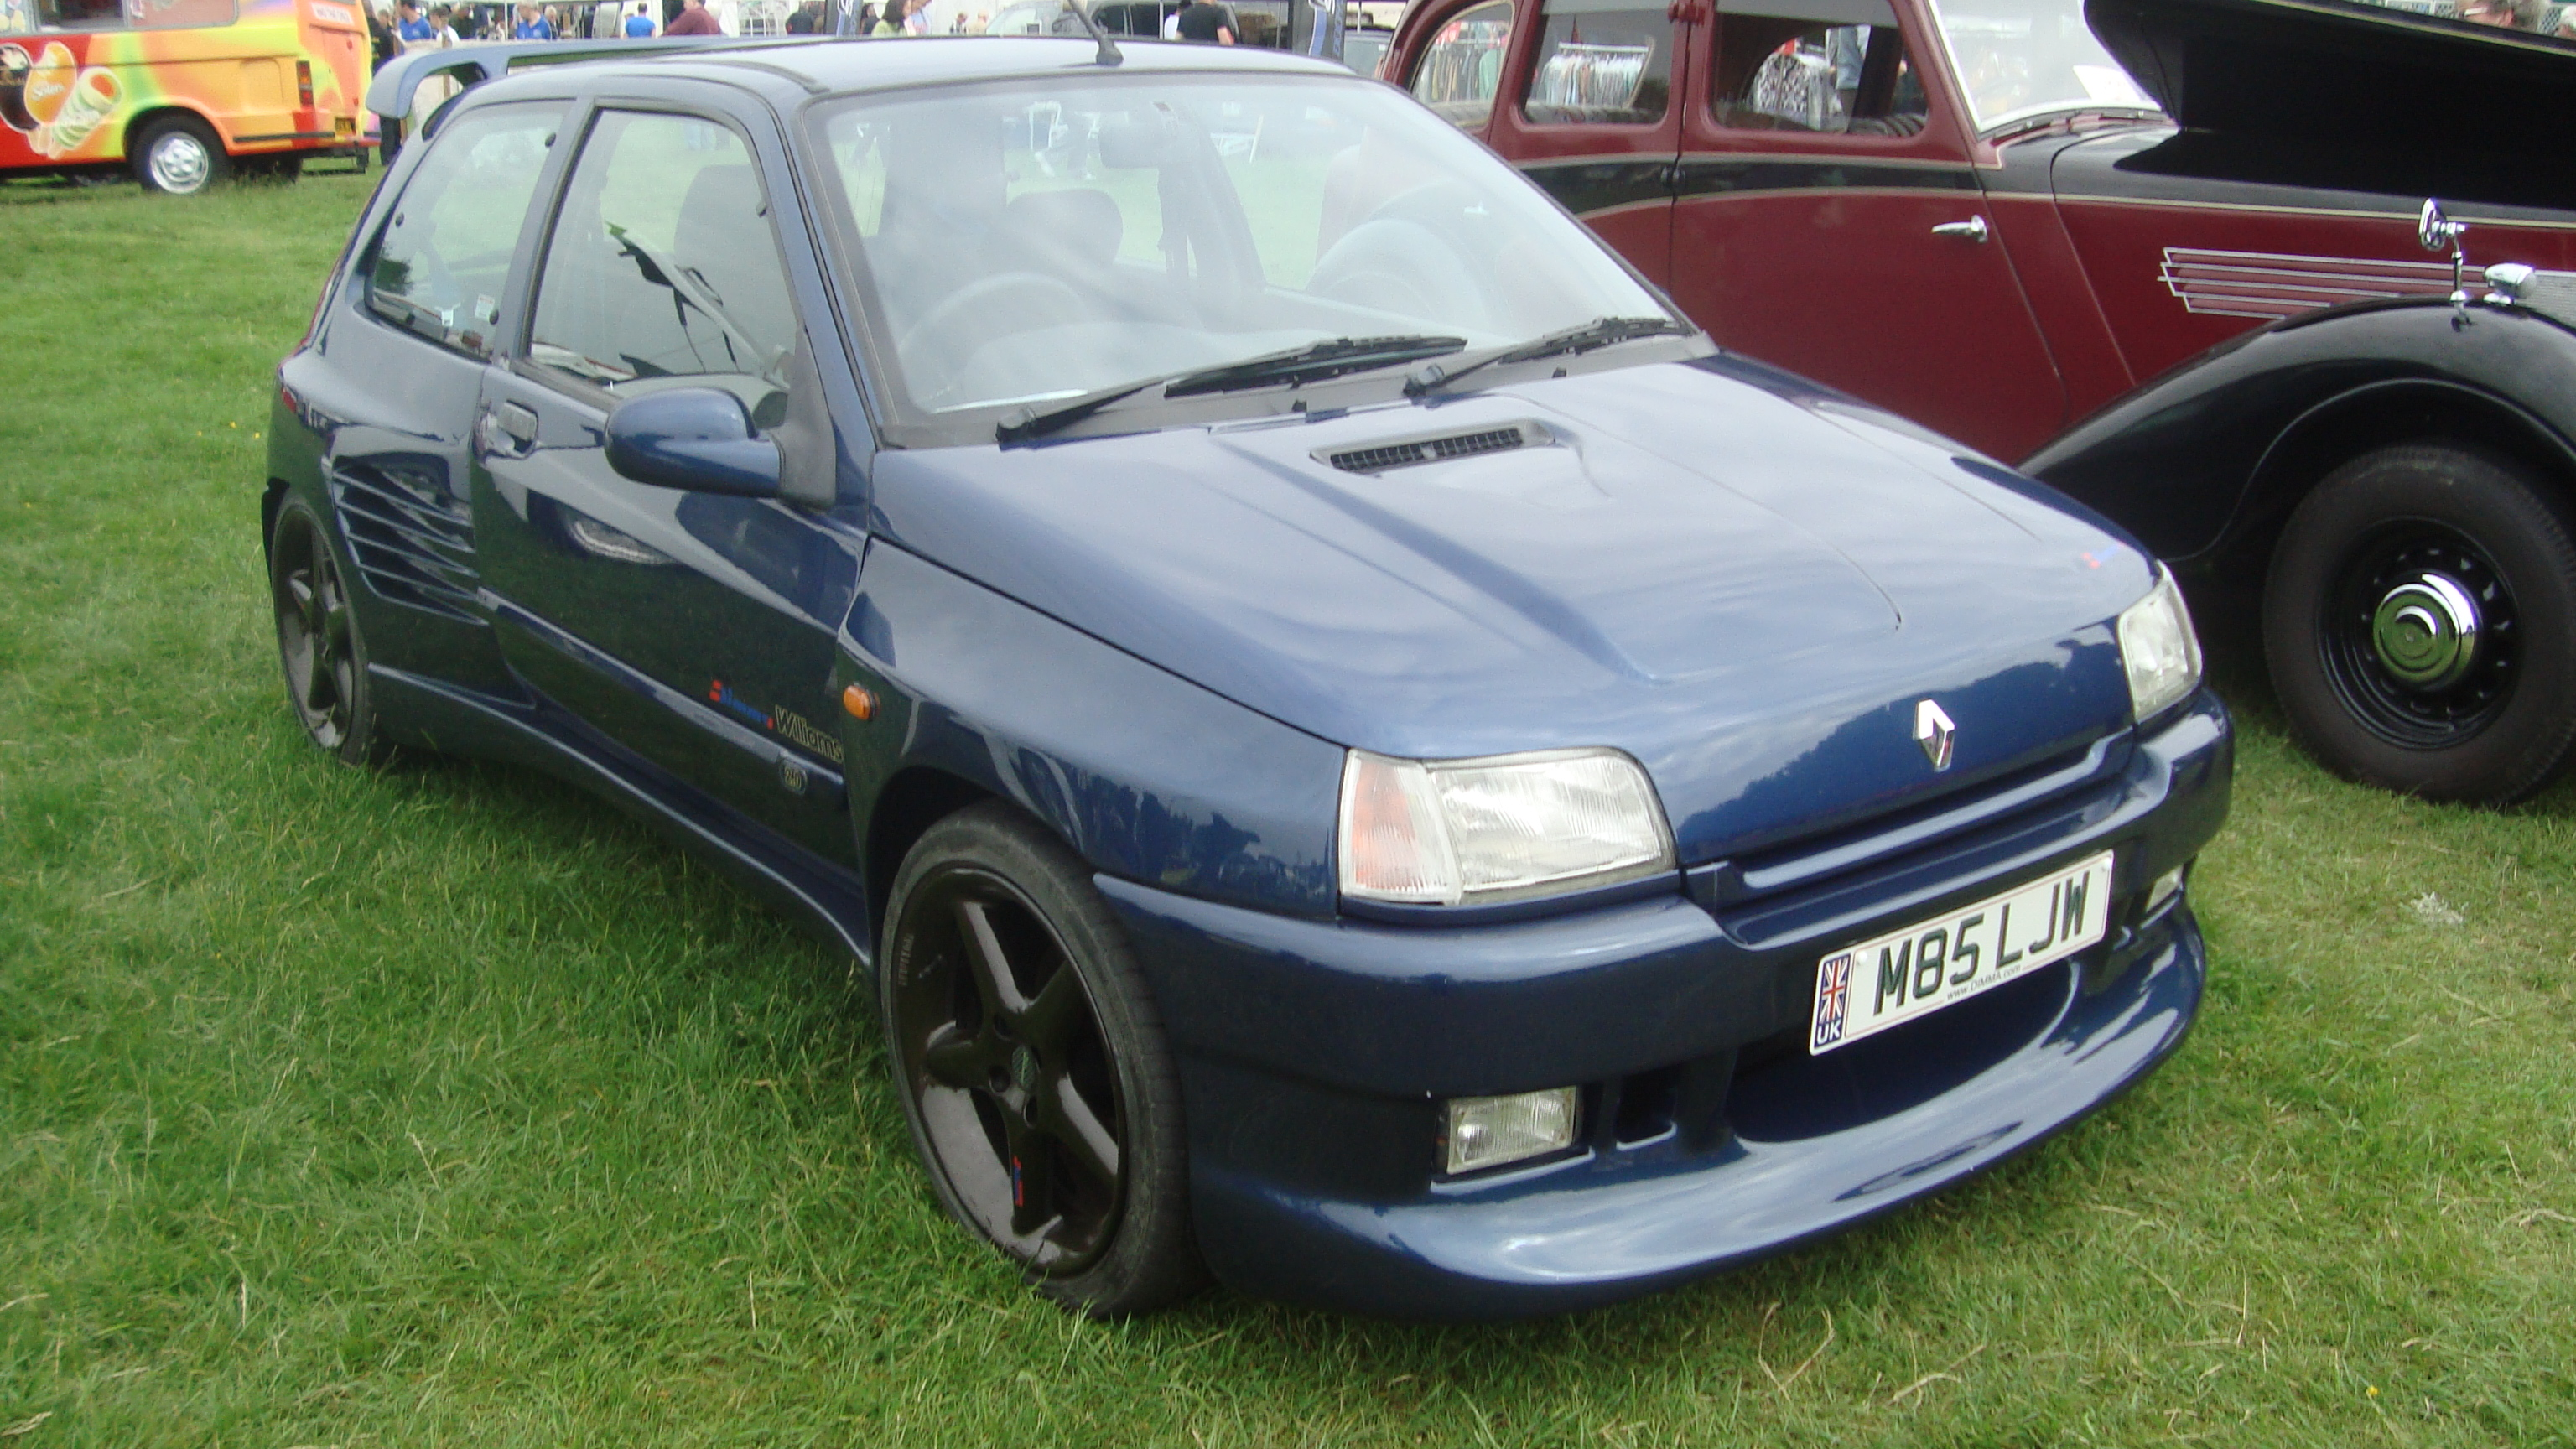 file renault clio williams 14311870682 jpg wikimedia commons. Black Bedroom Furniture Sets. Home Design Ideas